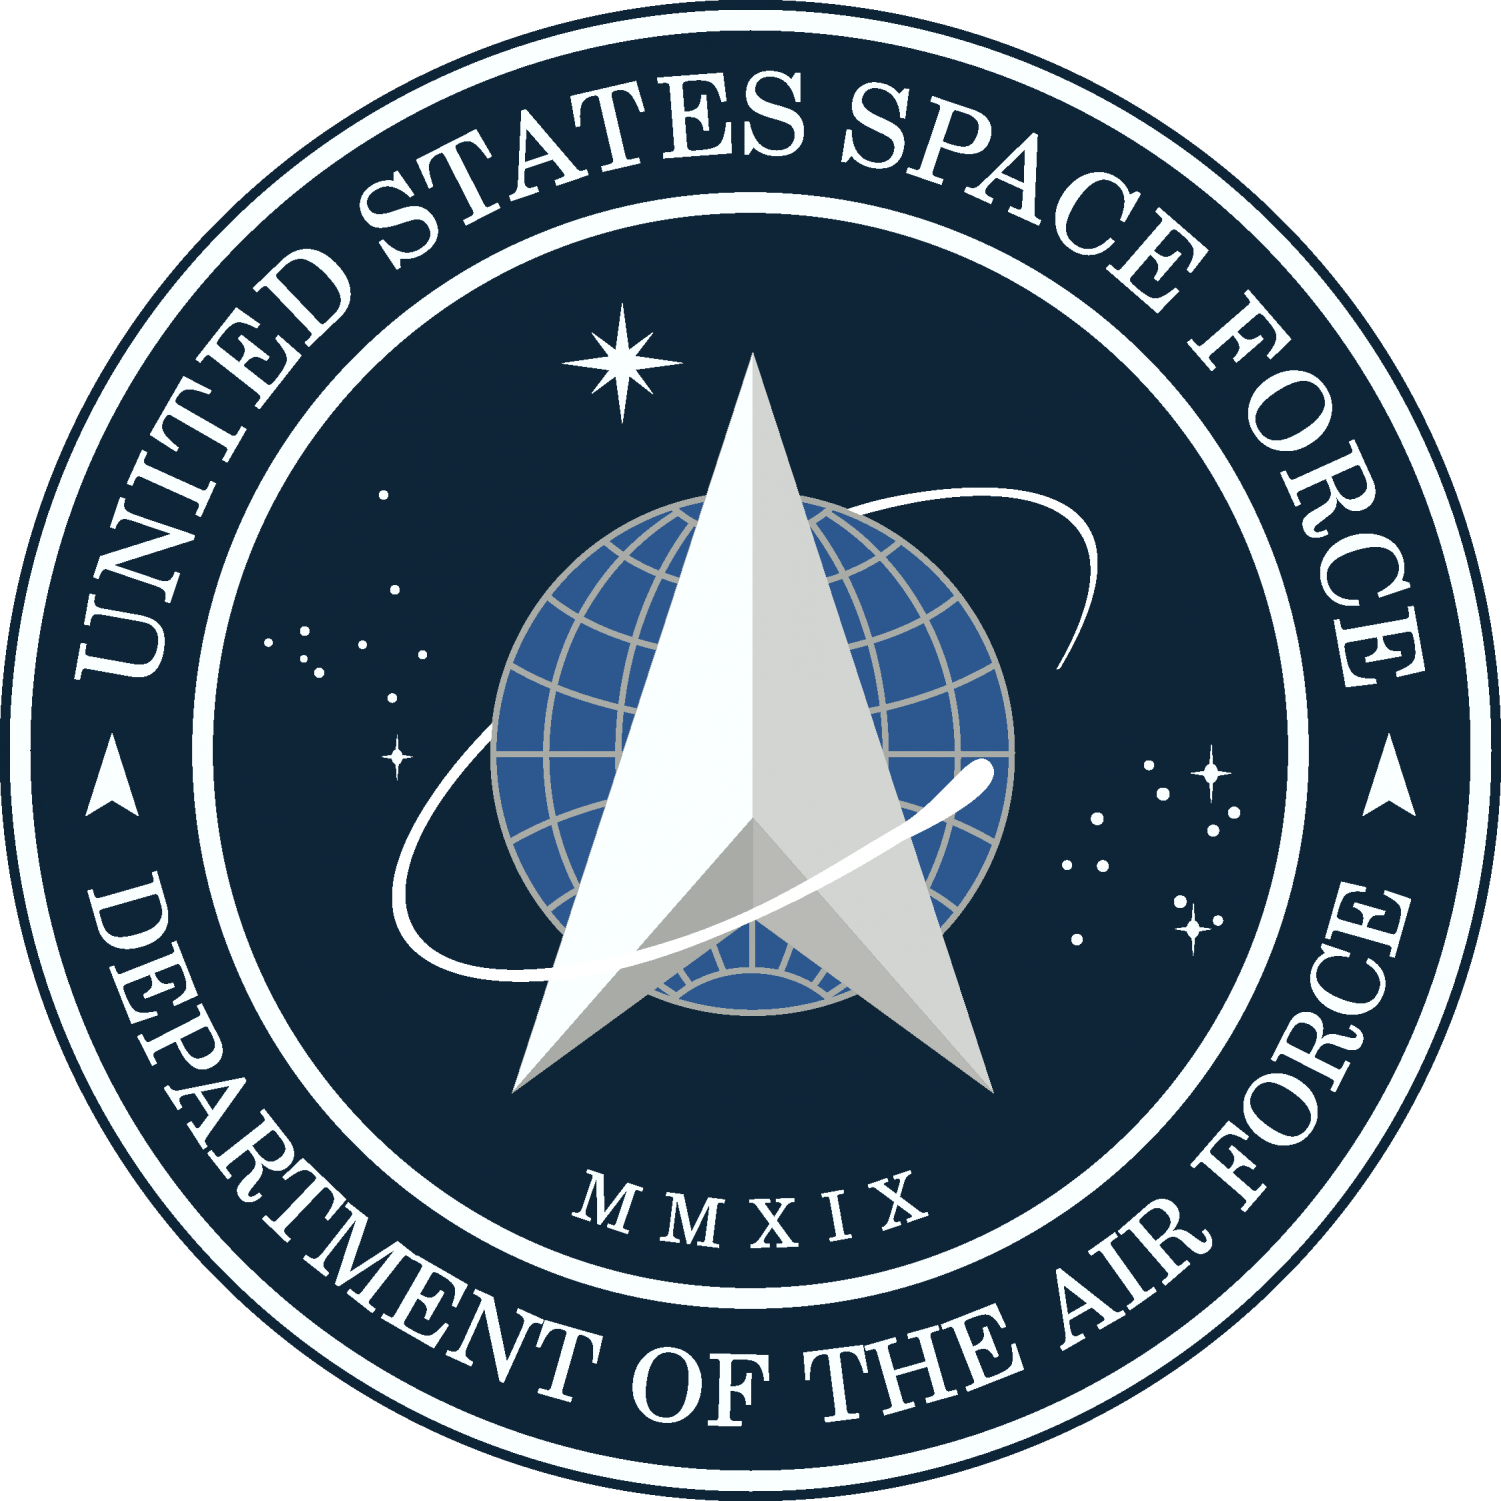 President Trump unveiled the Space Force logo on Jan. 24, 2020. Many have pointed out that it looks remarkably similar to the logo from the television series